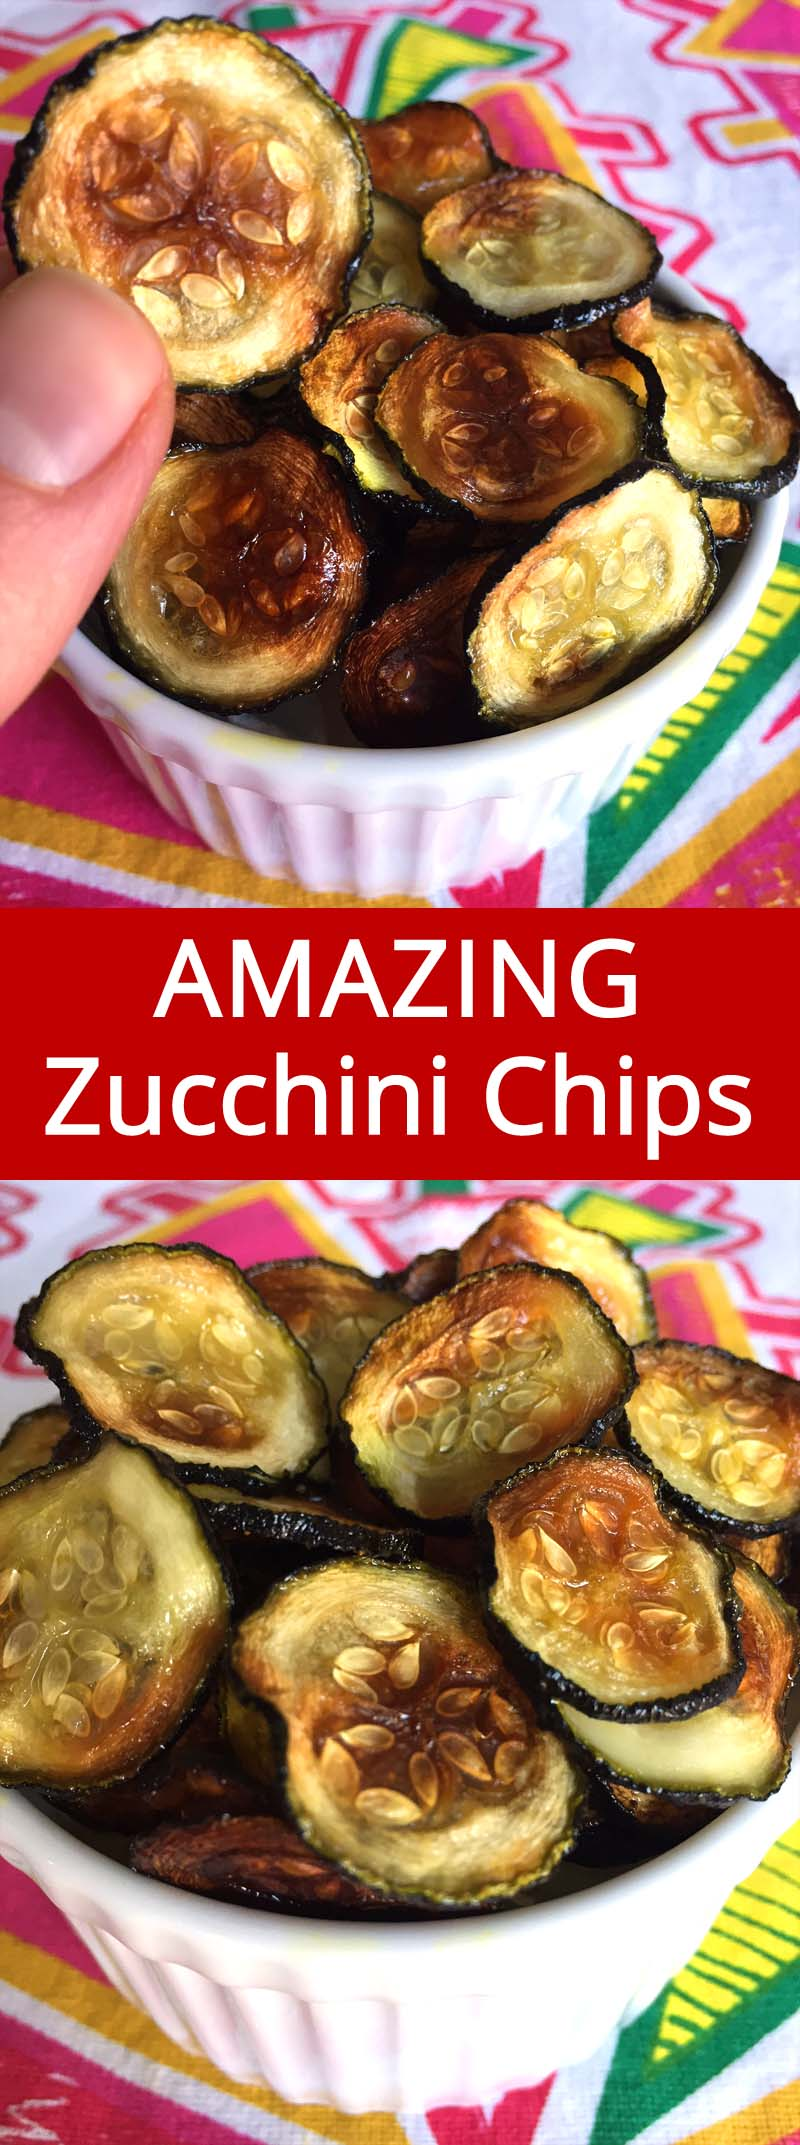 This is the only recipe that WORKS using the oven! I love baked zucchini chips!